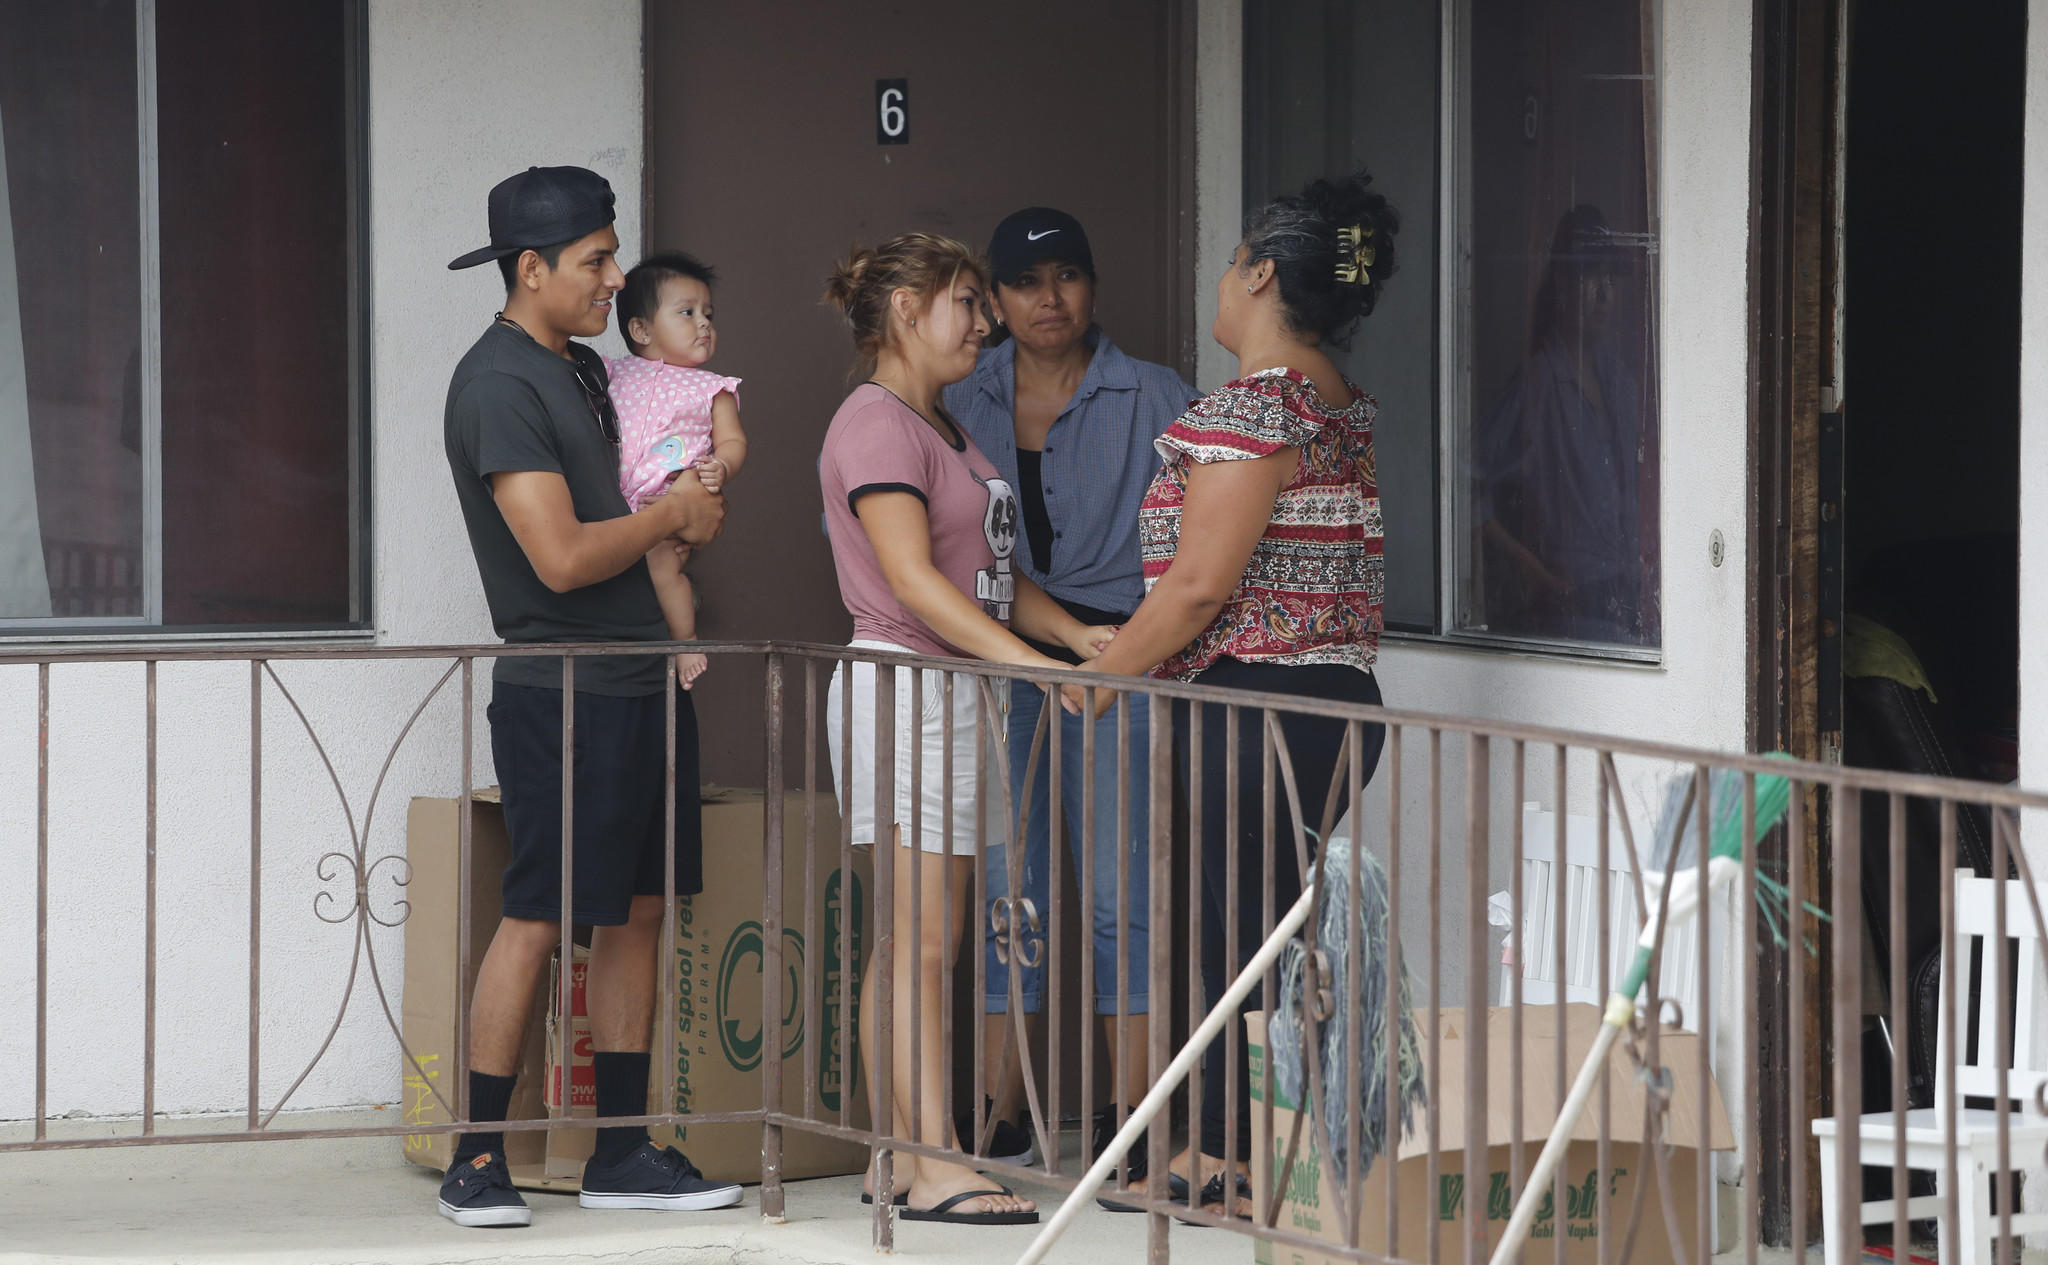 Maria Barrancas, right, bids farewell to neighbors on her family's last day in the United States.